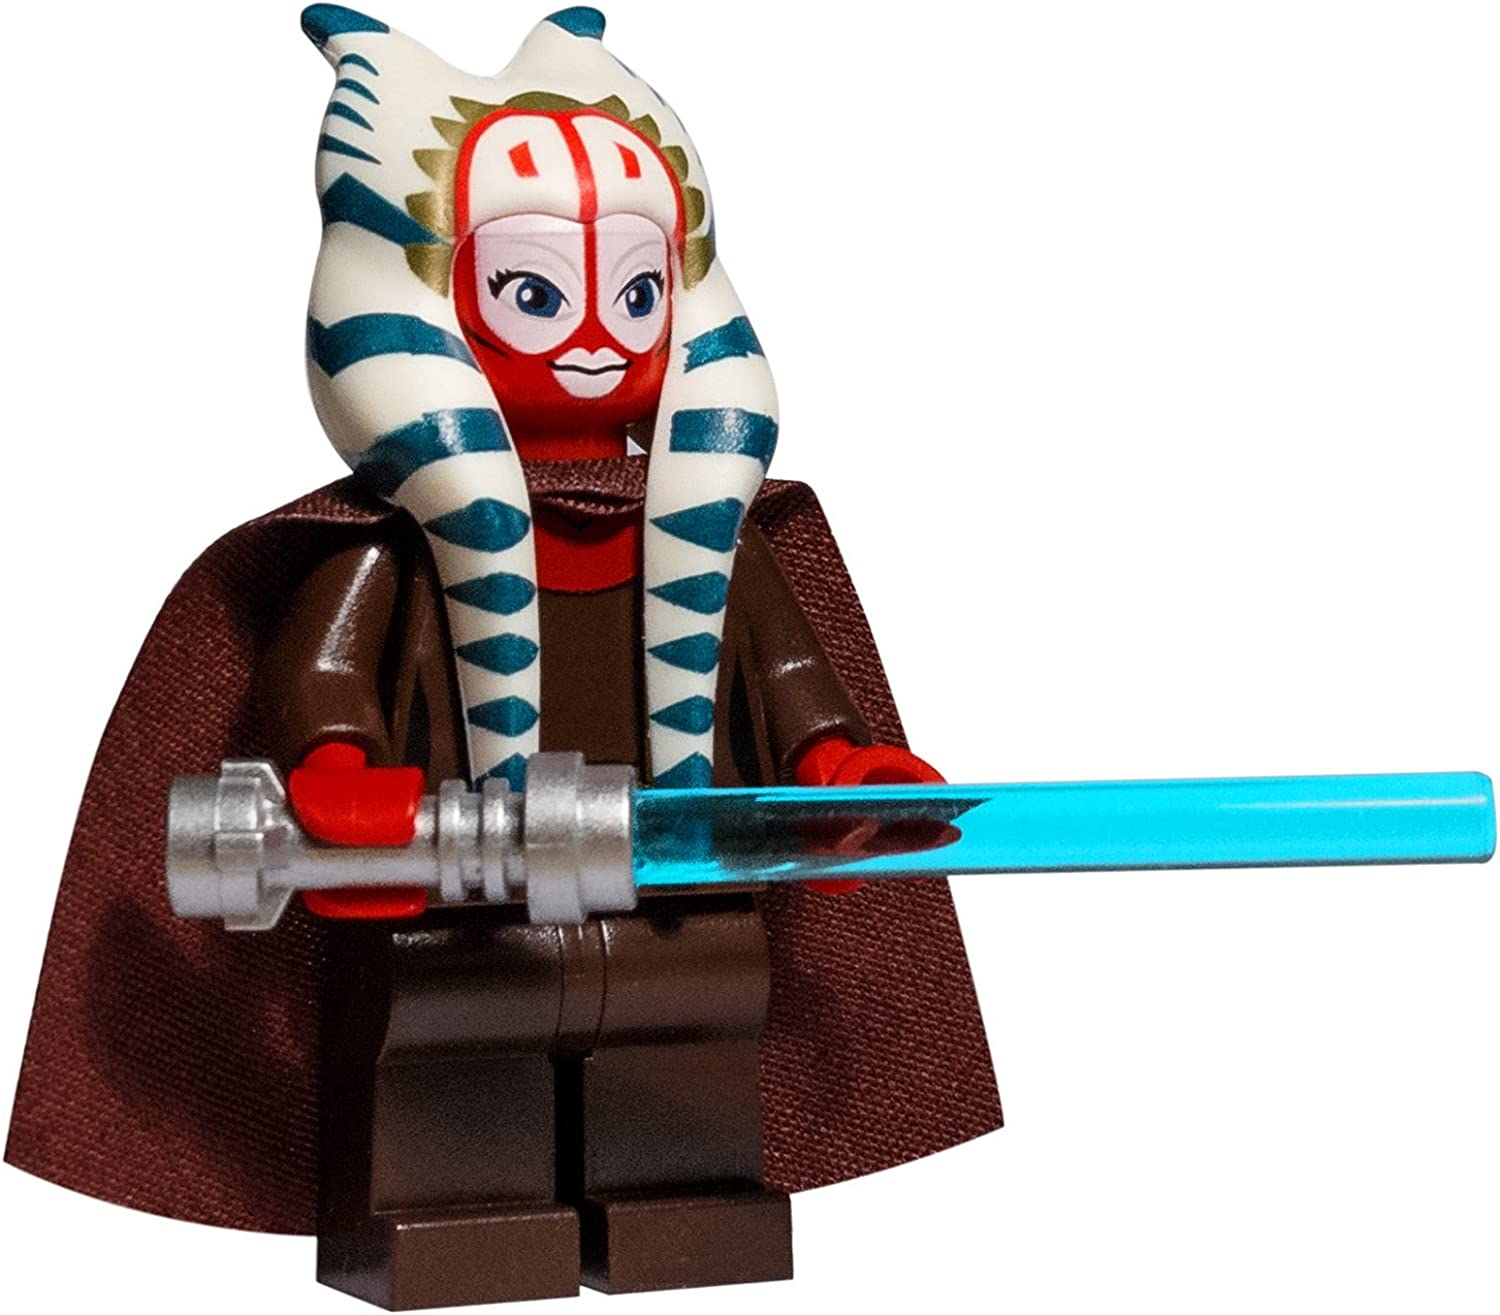 LEGO Star Wars Clone Wars Minifigure - Shaak Ti with Lightsaber